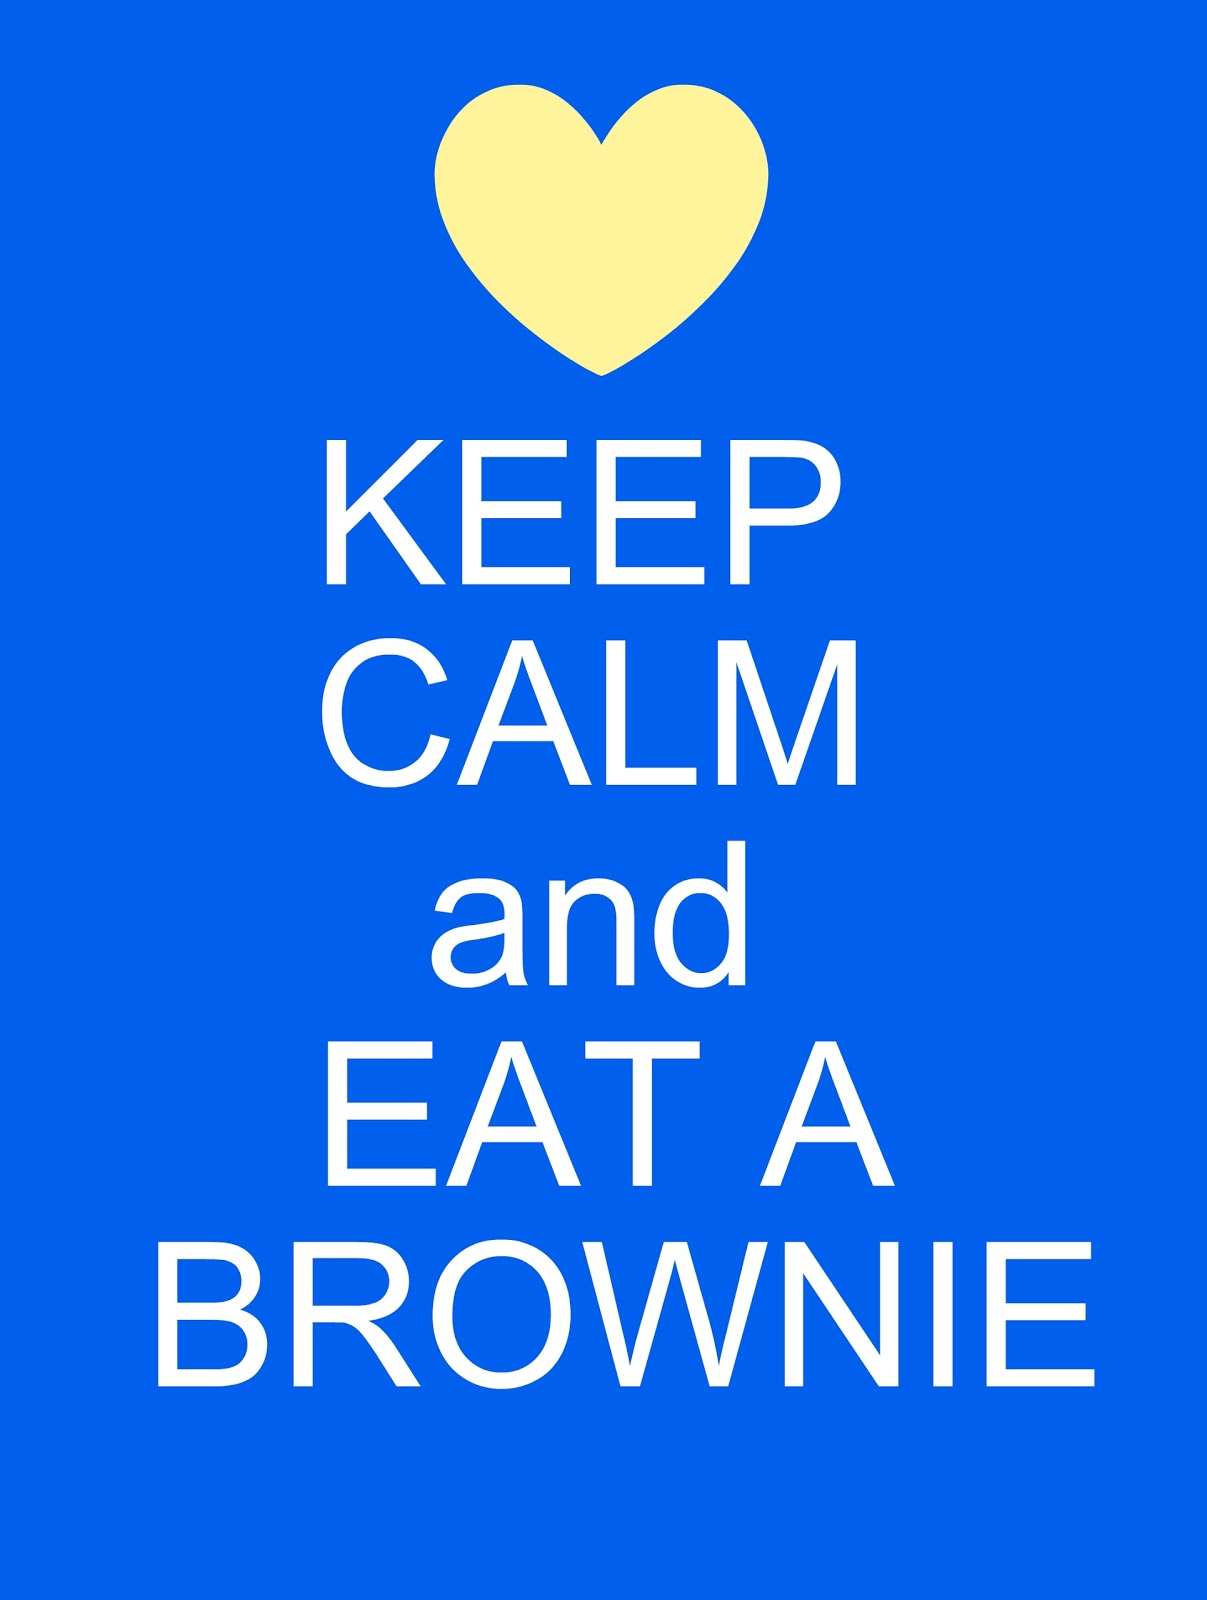 MAY DAYS: KEEP CALM and EAT A BROWNIE